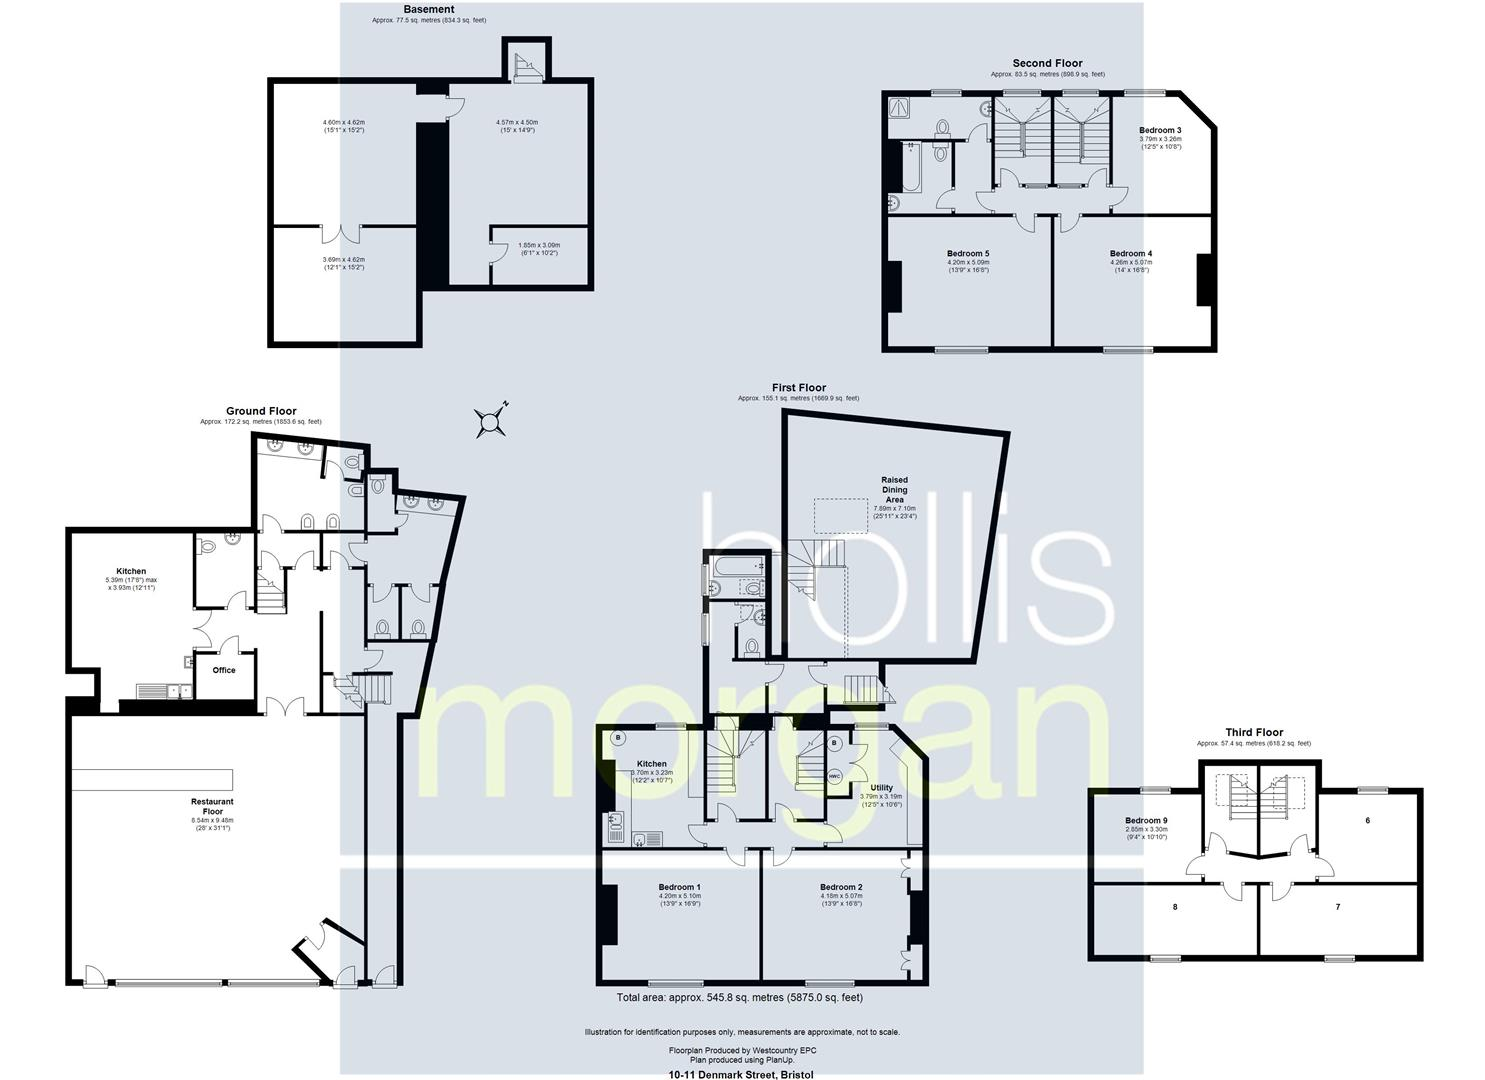 Floorplans For MIXED USE / 9 BED HMO - DENMARK STREET